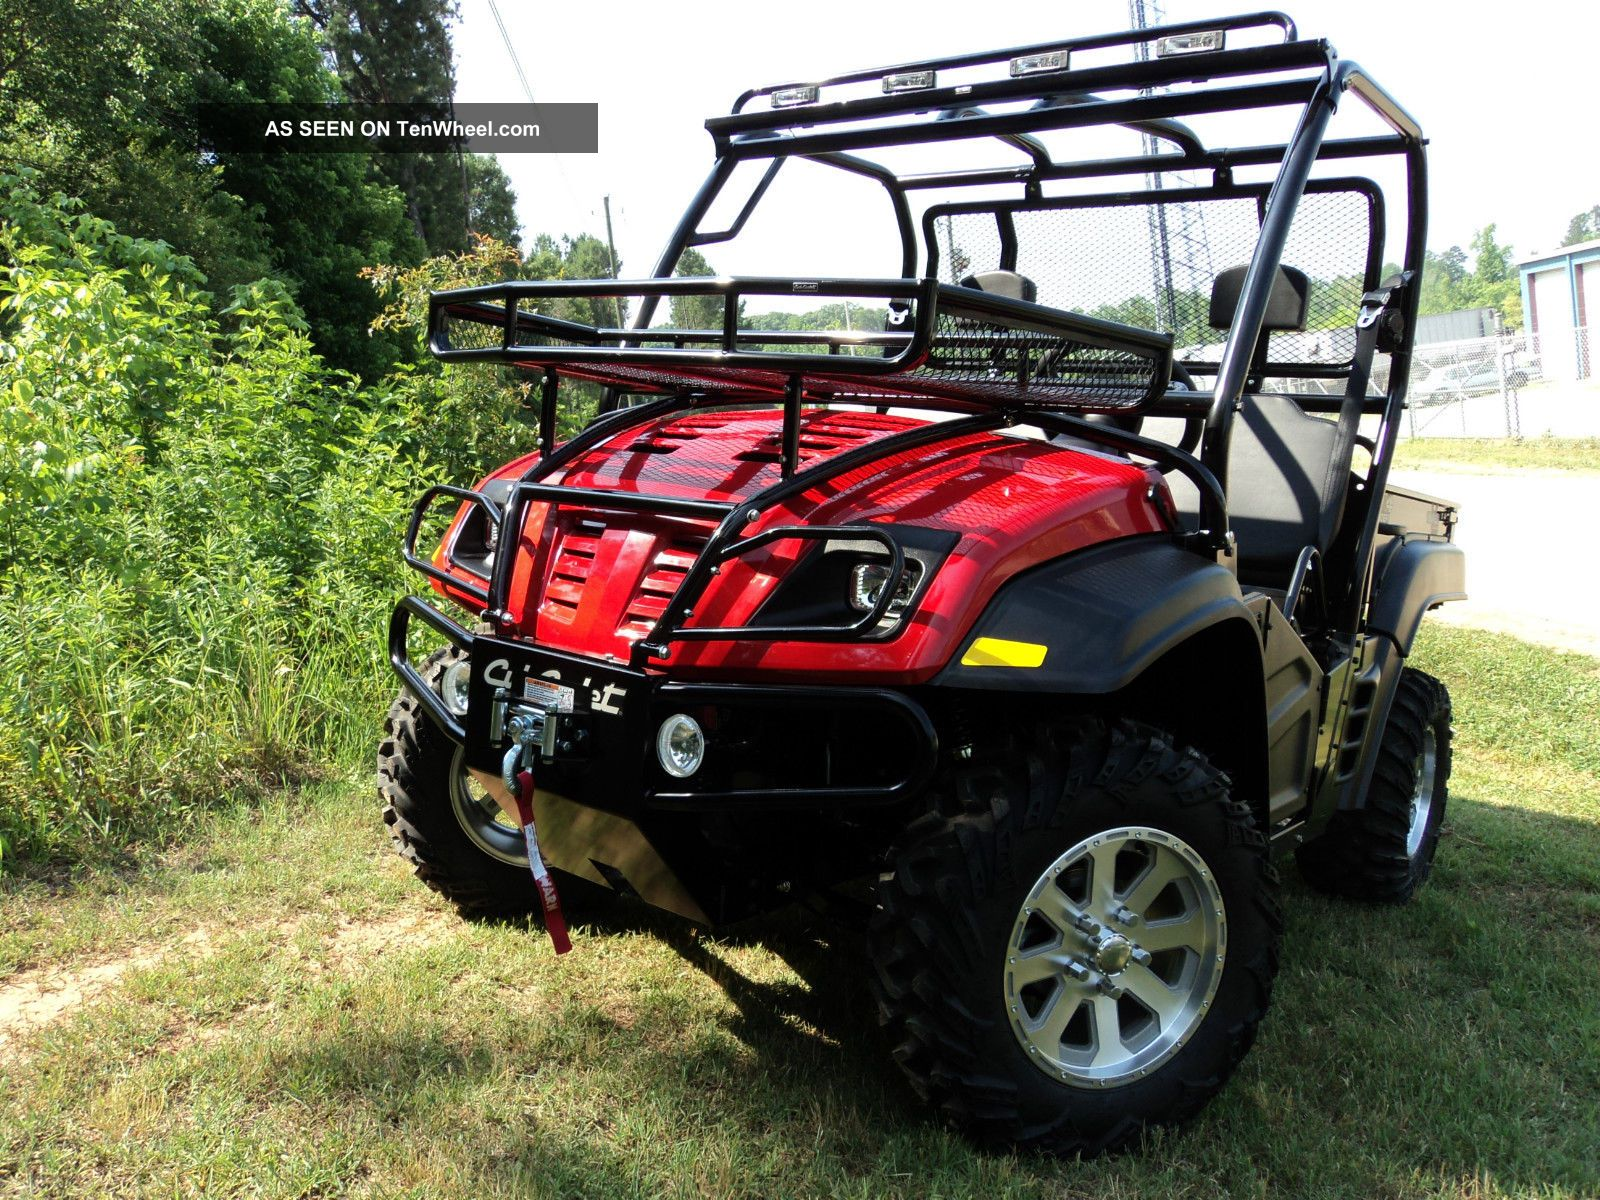 2014 Cub Cadet Volunteer 4x4 Efi UTVs photo